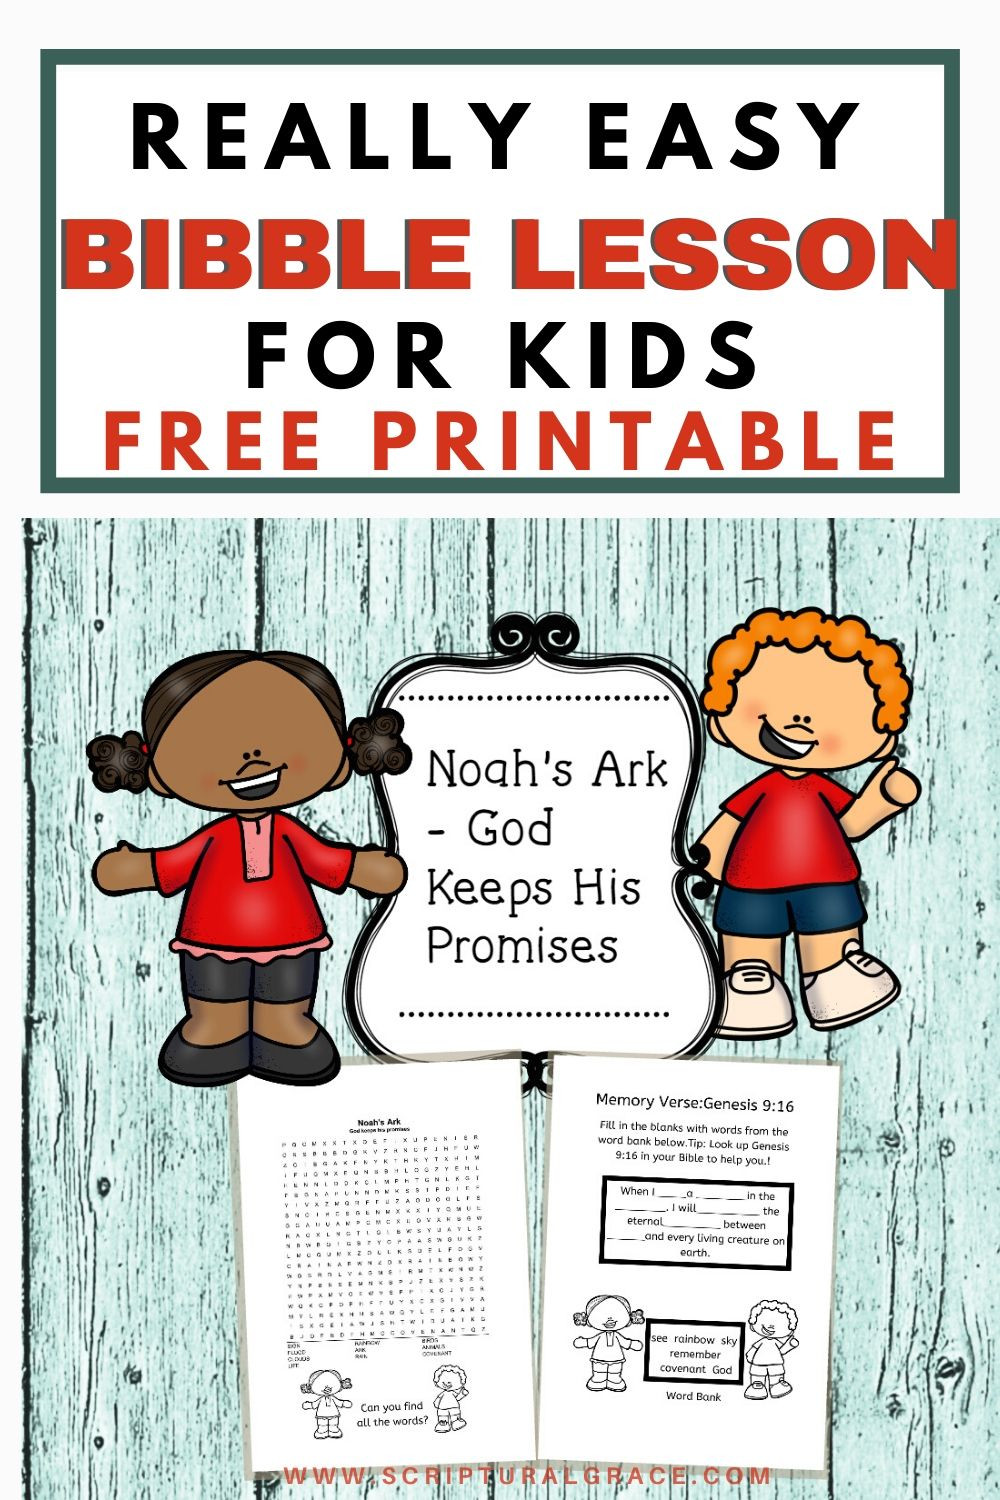 Free bible lesson for kids Noah's Ark Free printable